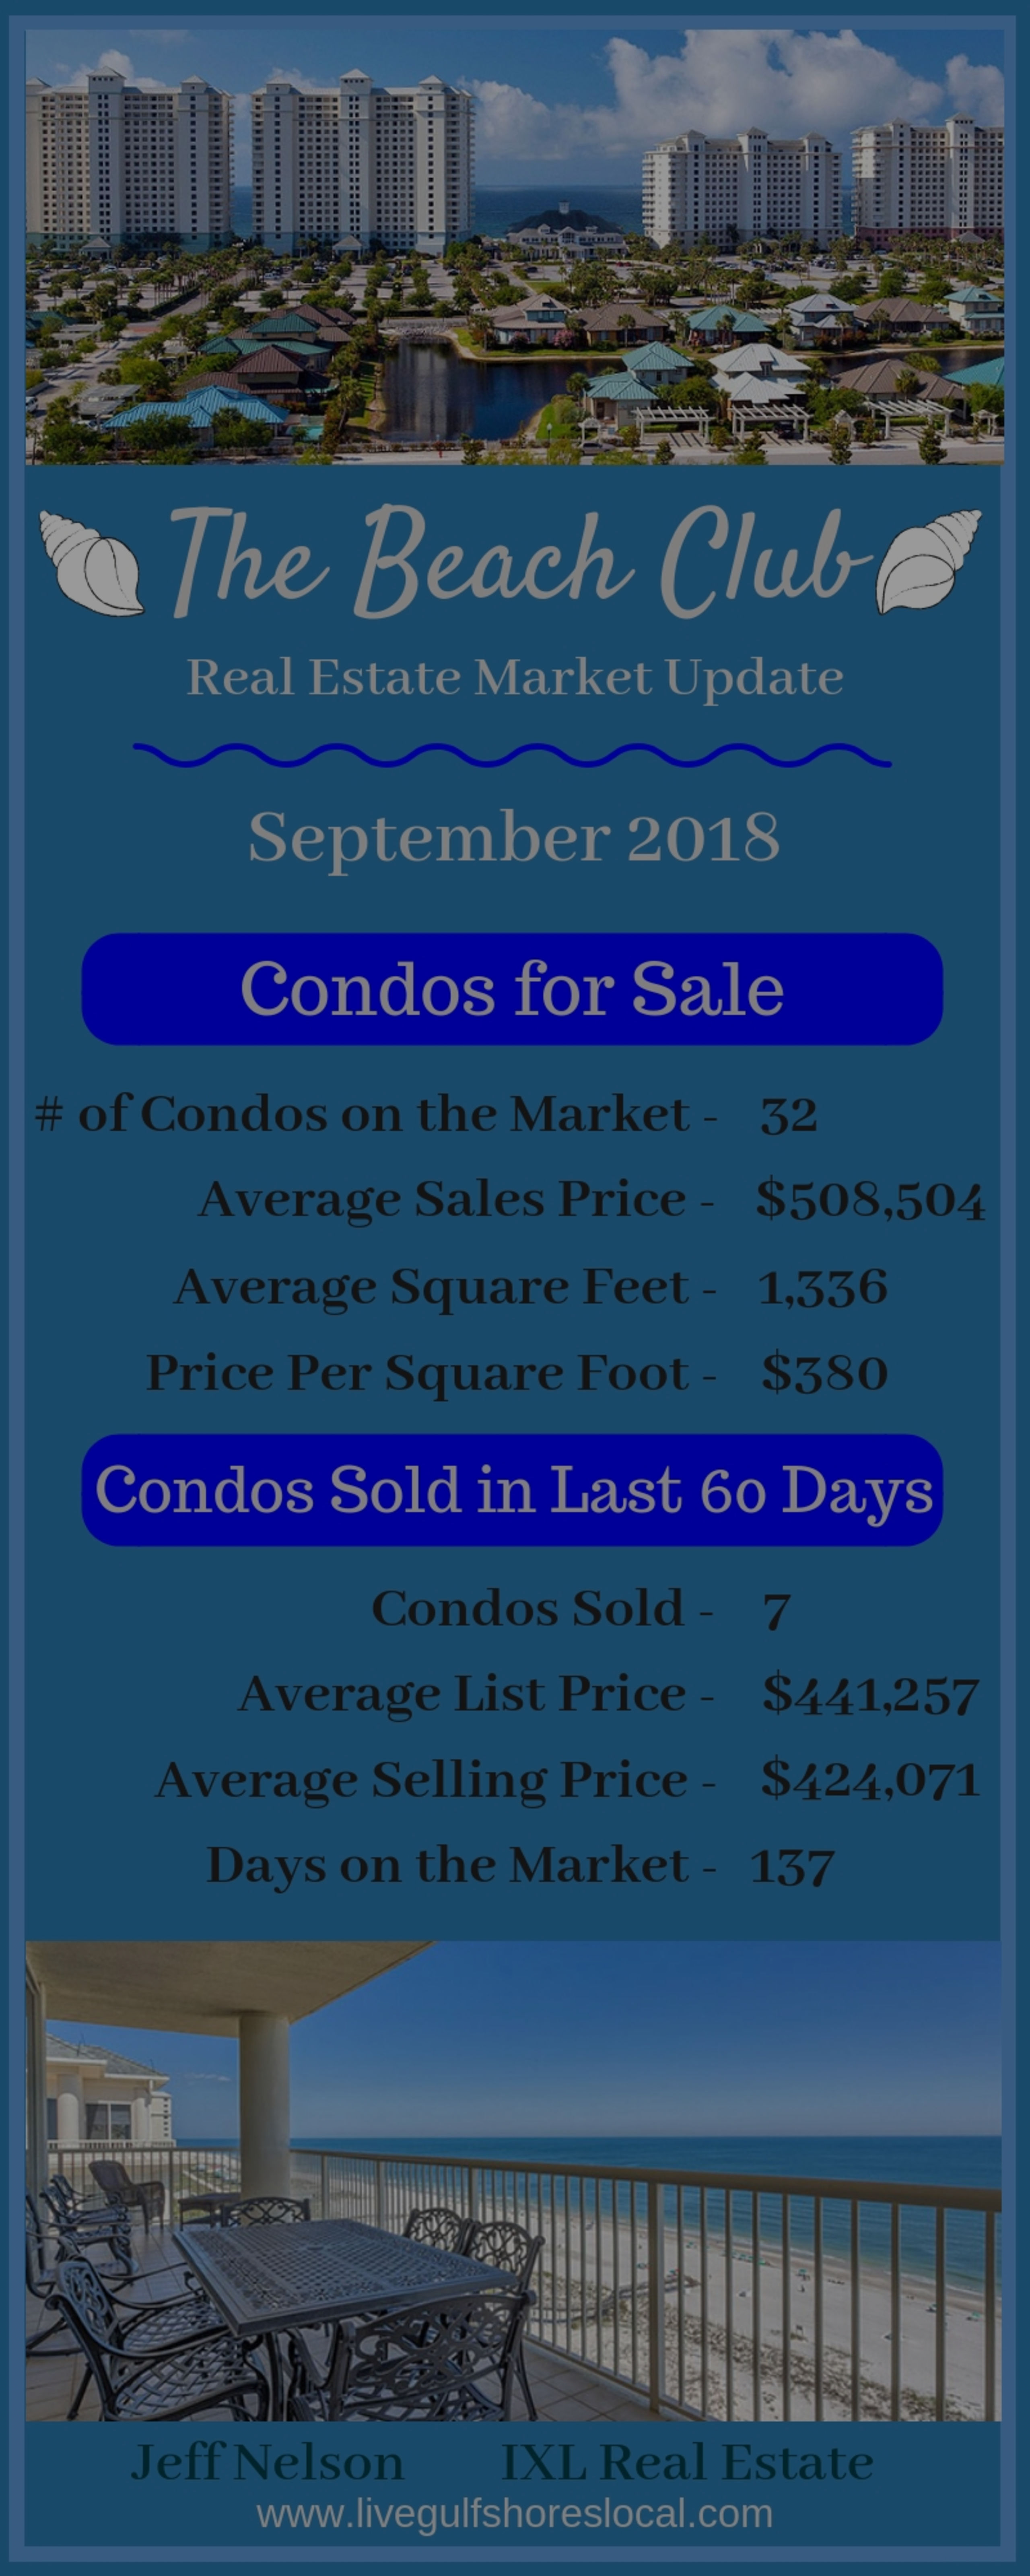 The Beach Club Real Estate Market Report – September 2018